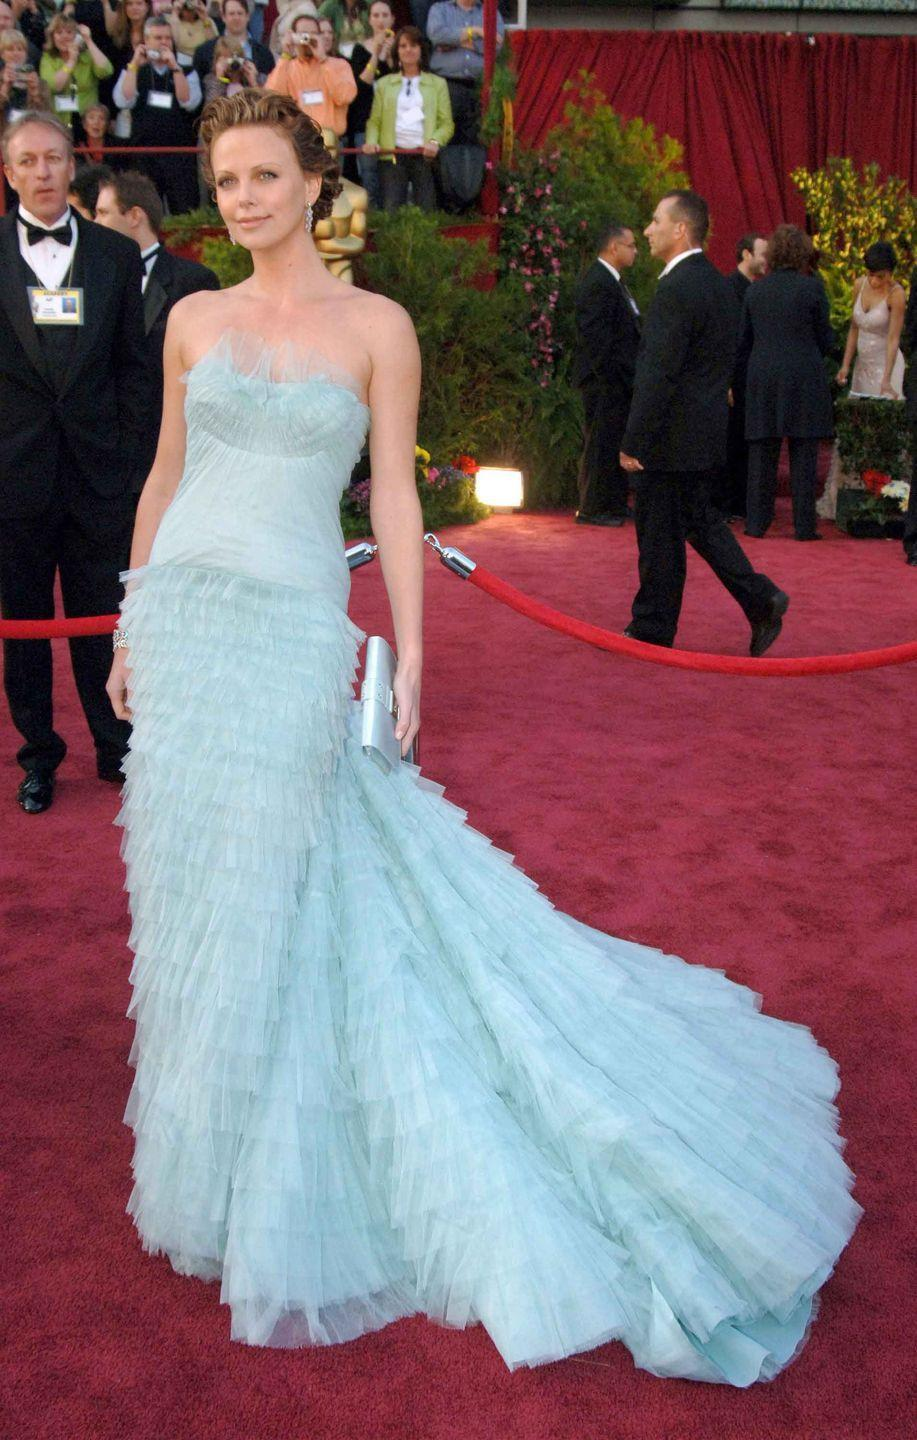 <p>Charlize Theron in robin's egg blue John Galliano for Christian Dior gown.</p>